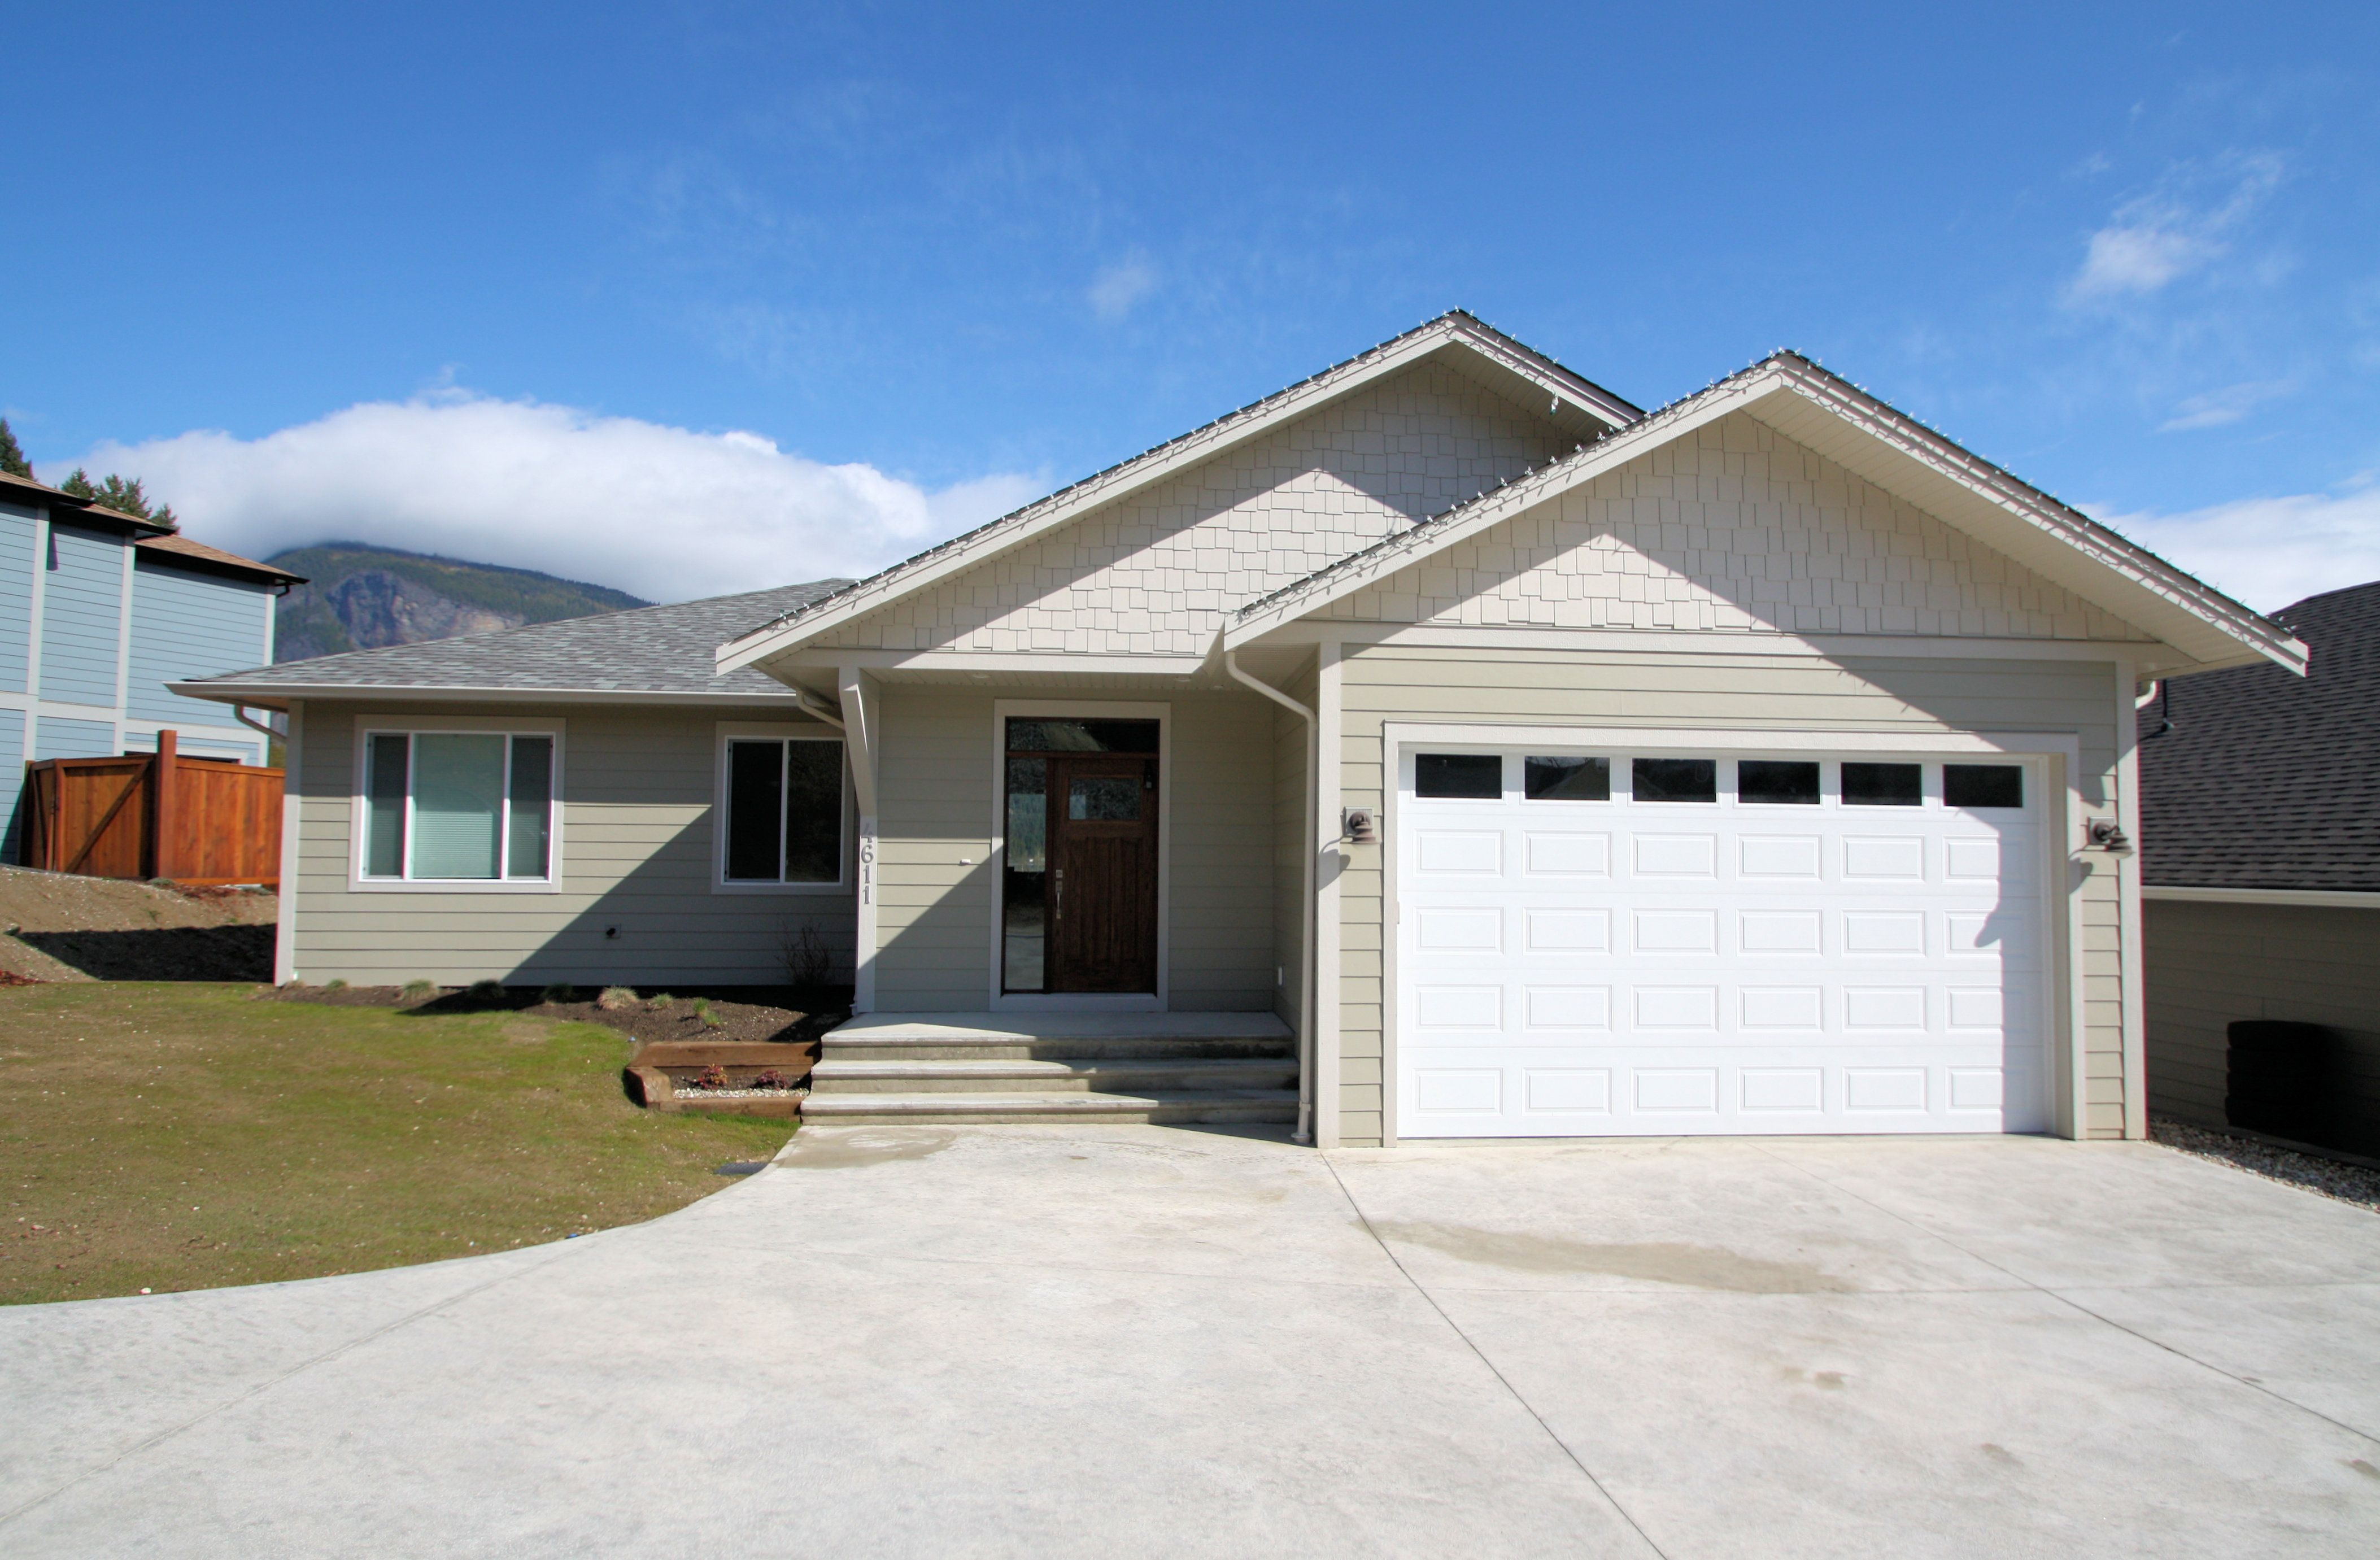 Brand new home with beautiful lake and mountain views